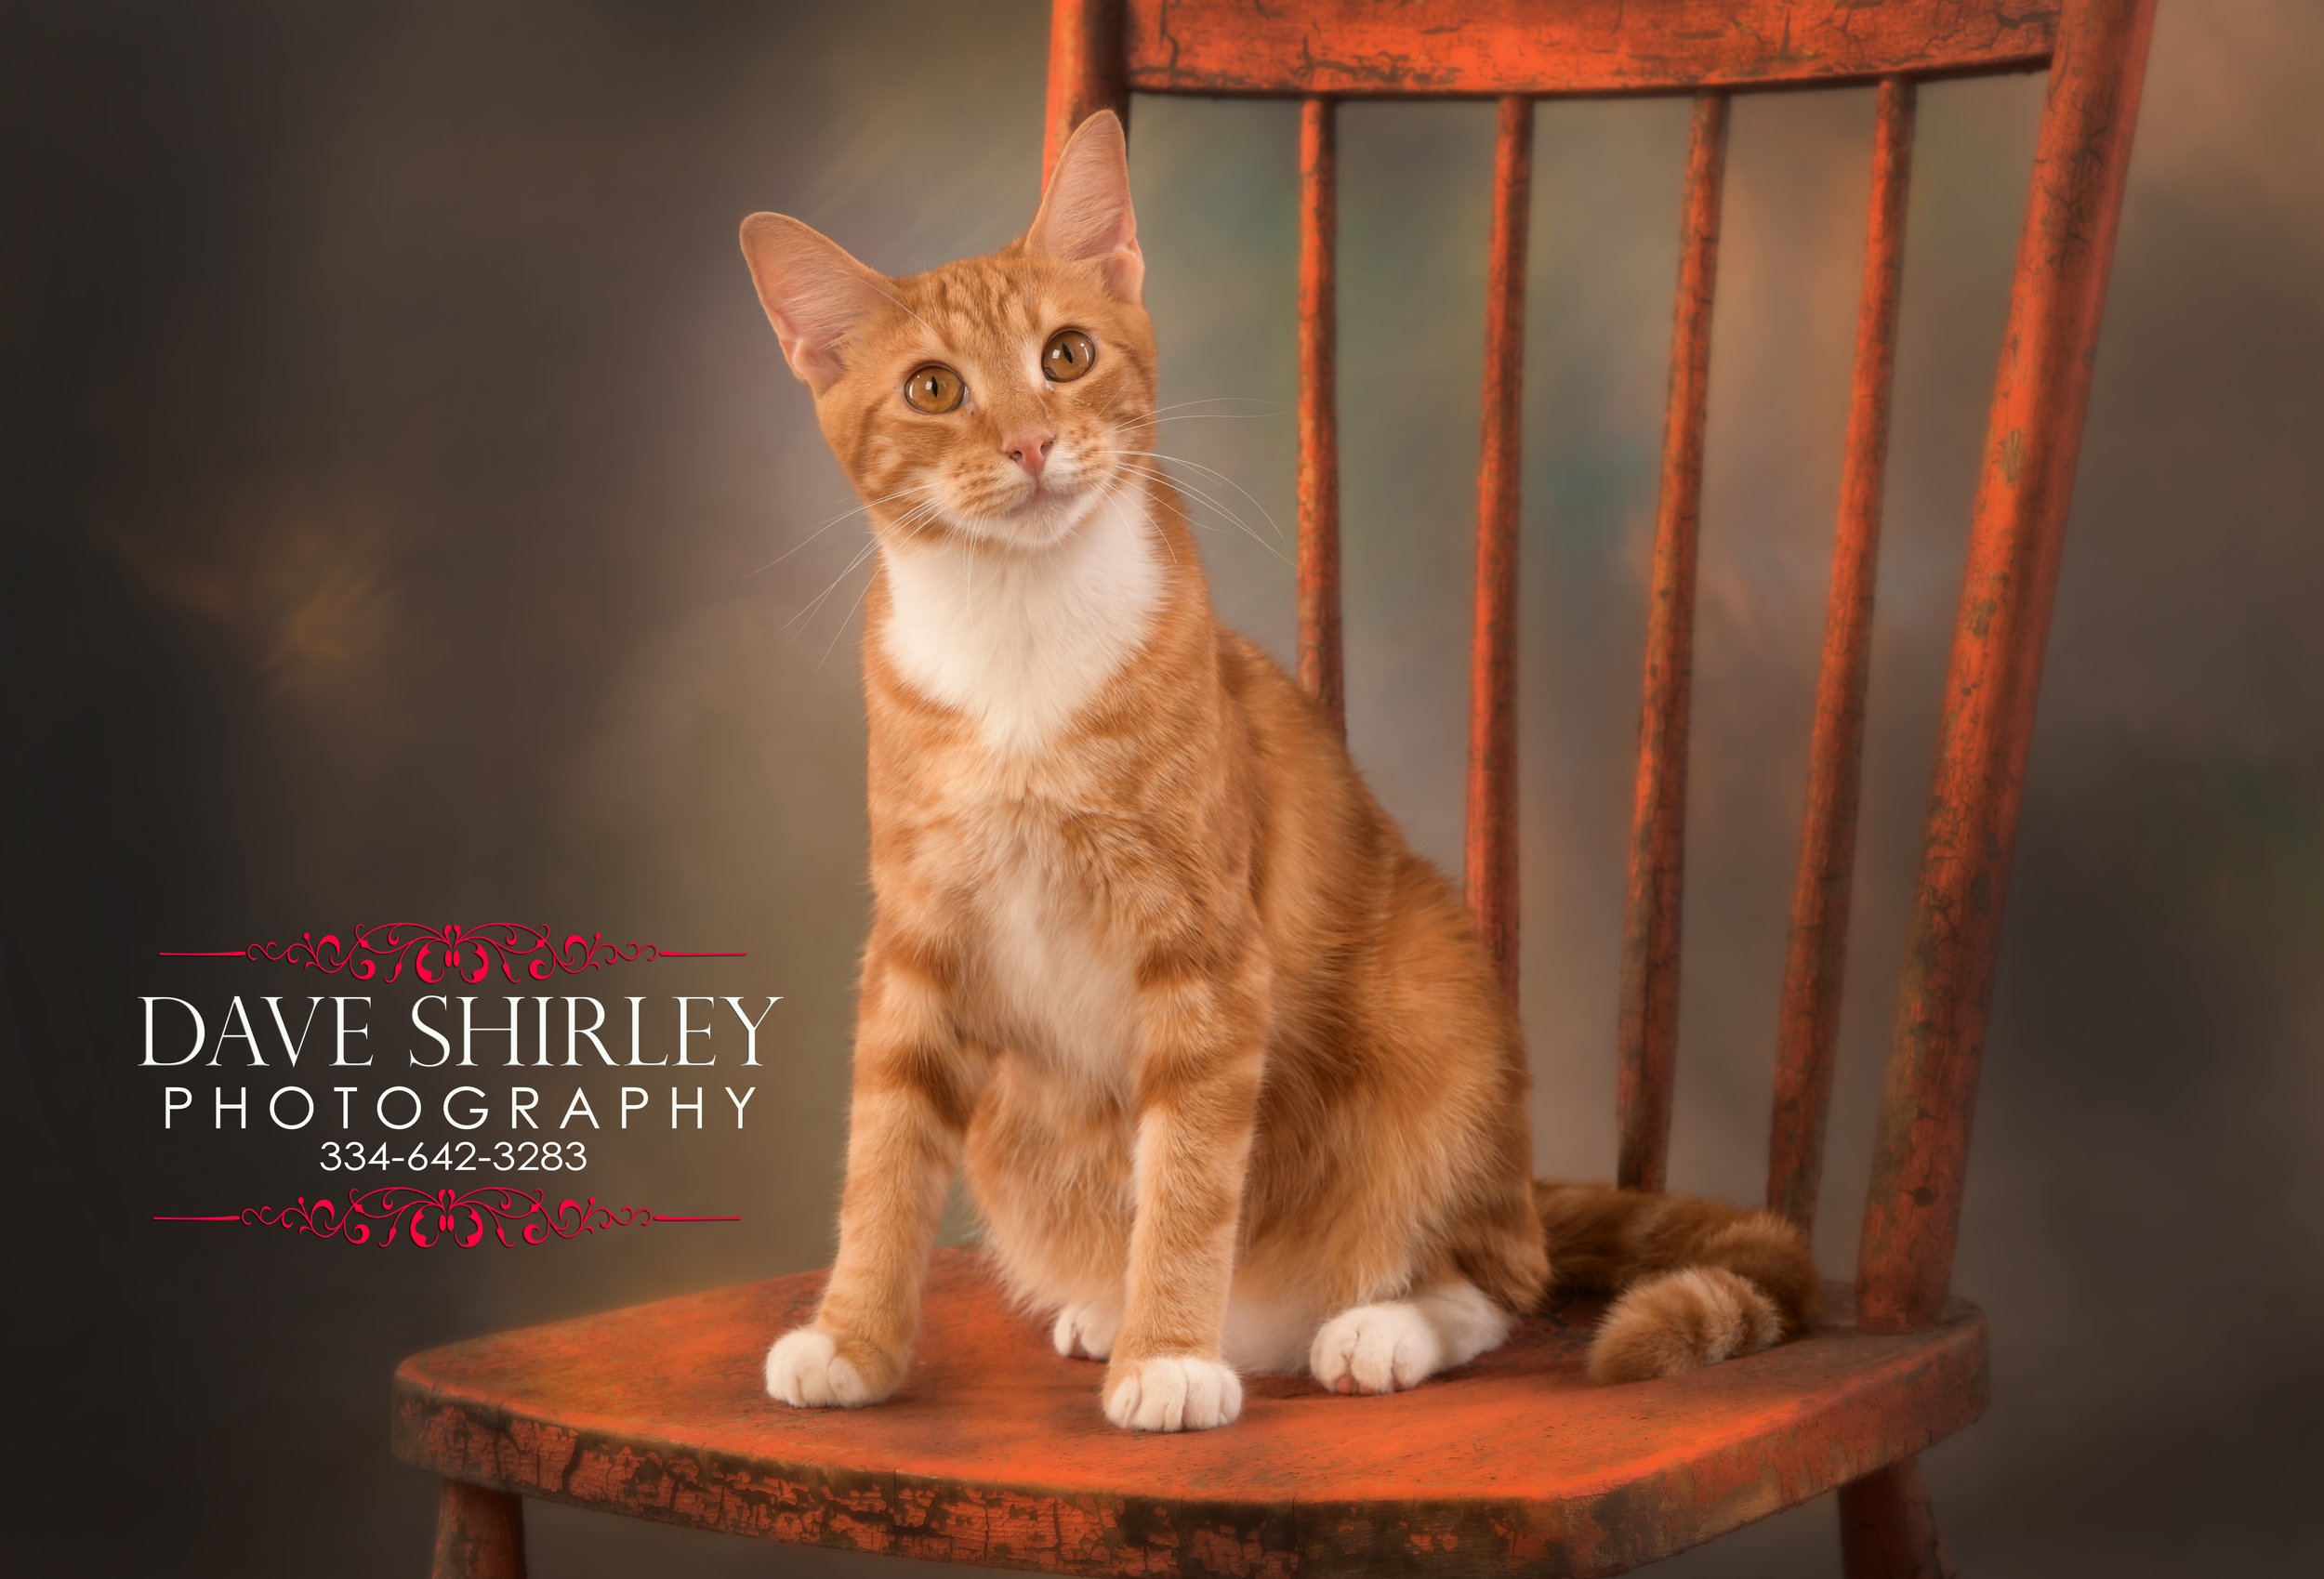 YES We do photograph Pets!!  Here is our new kitten Sunny that we have adopted from our local Animal Shelter.